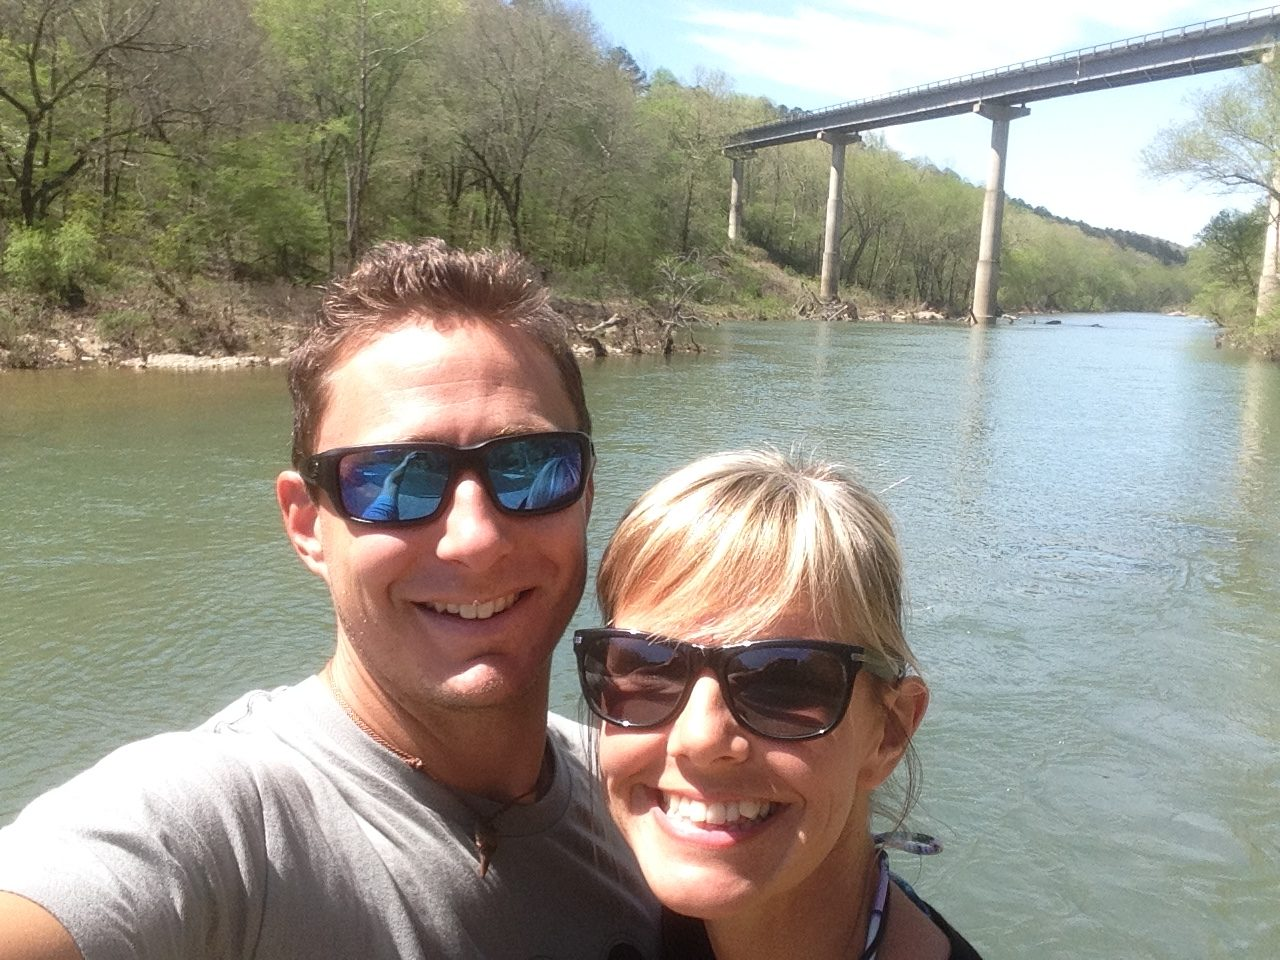 Camp Arkansas, Christine West, Adam Maire, Dive and Drive, River, #GetYourFinsOn, Cressi